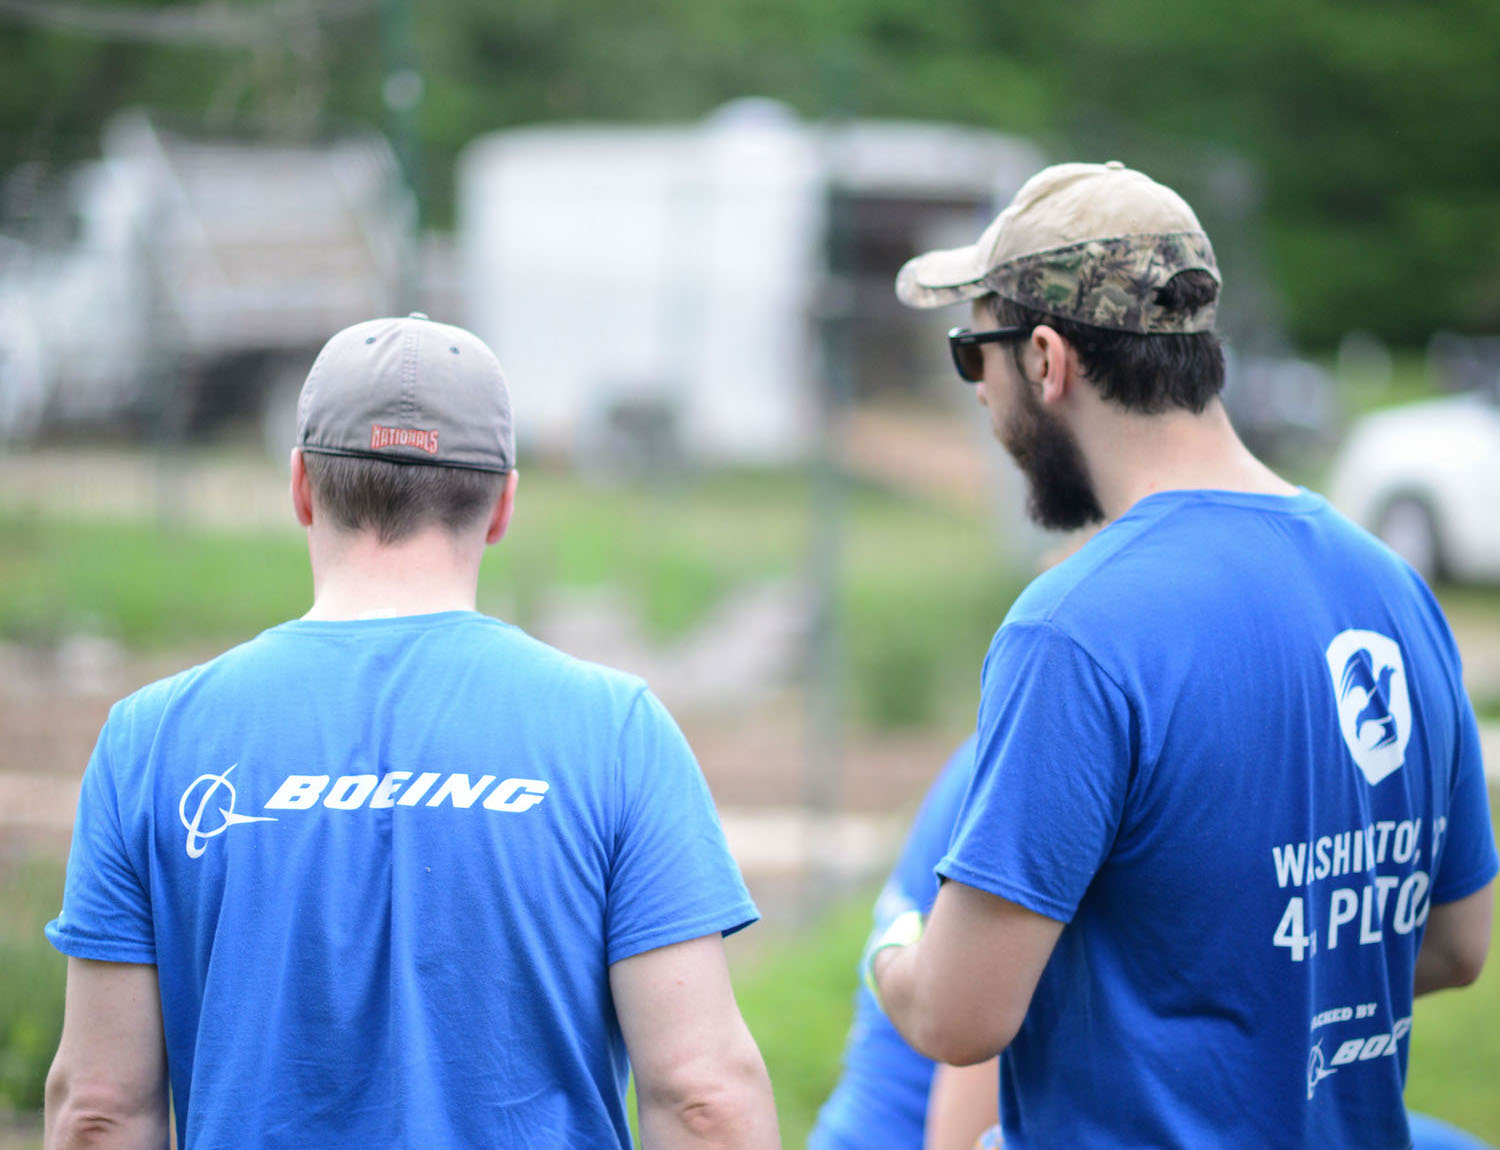 Boeing employees and Mission Continues volunteers working together at Boeing's lead sponsor project at Ft Dupont in 2017.